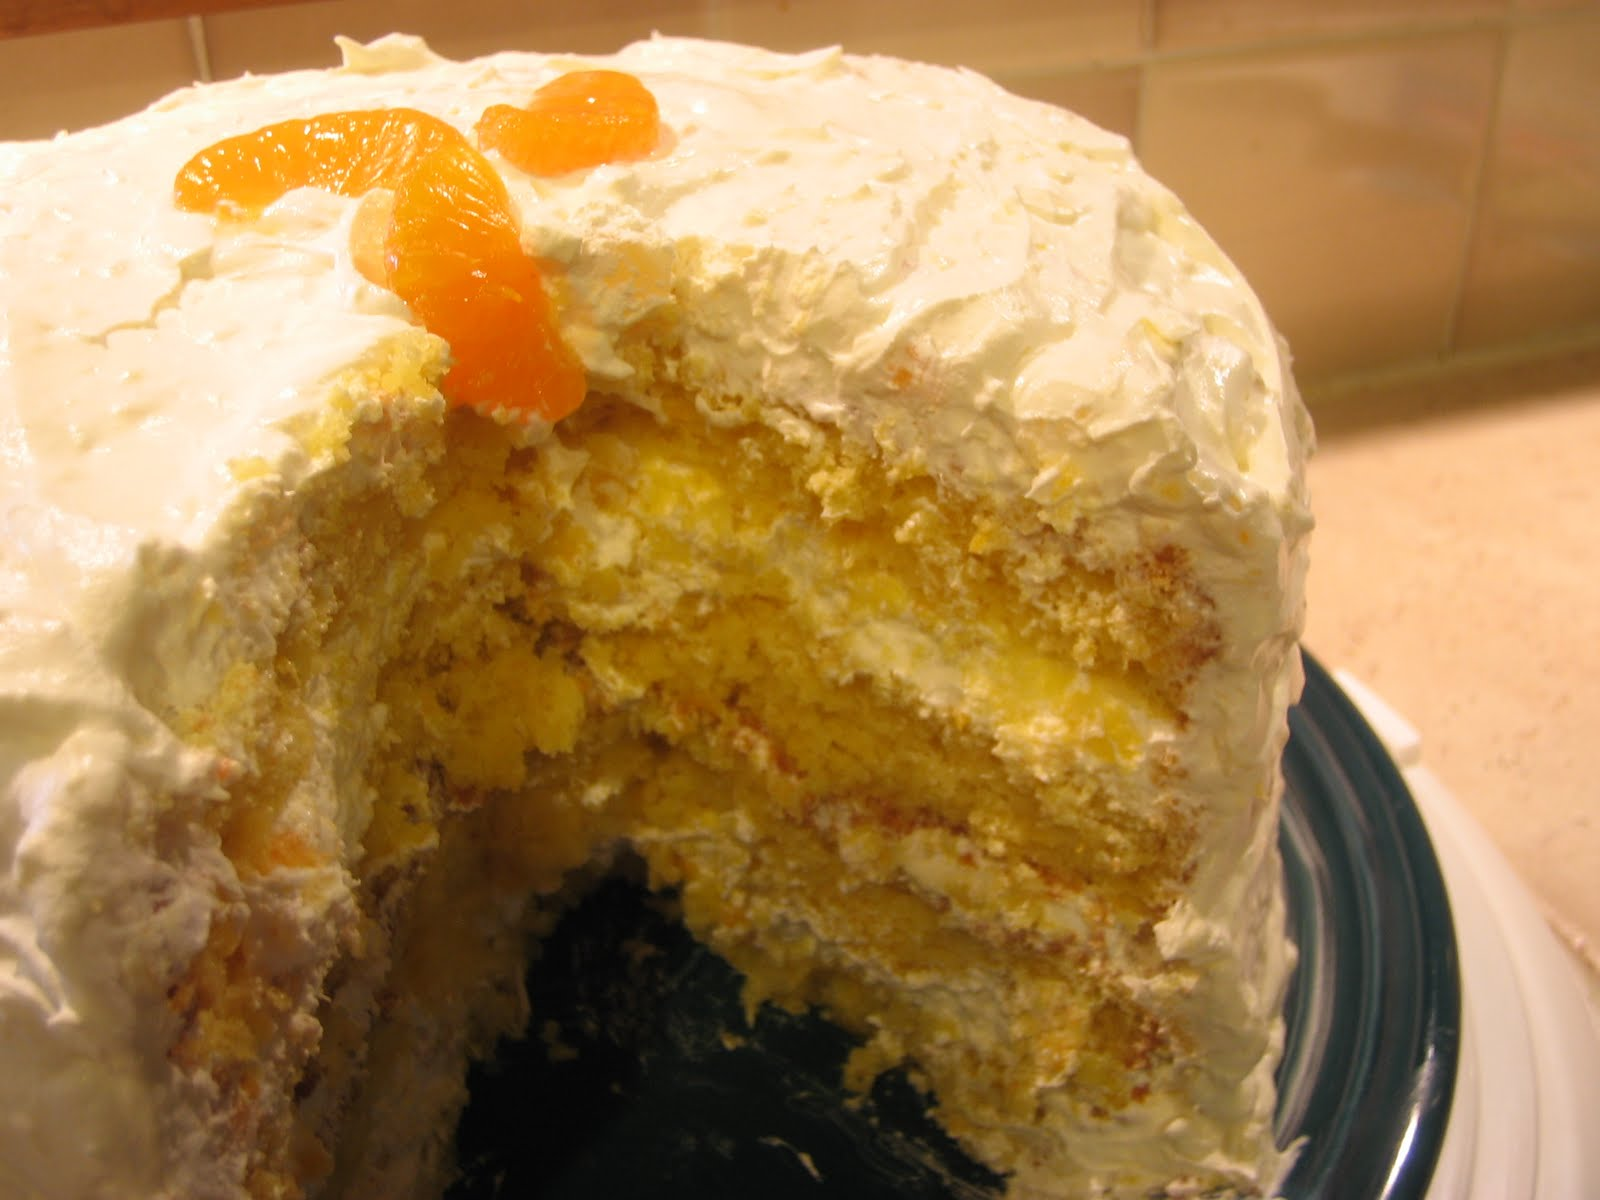 The Baking Redhead: Mandarin Orange Pineapple Cake